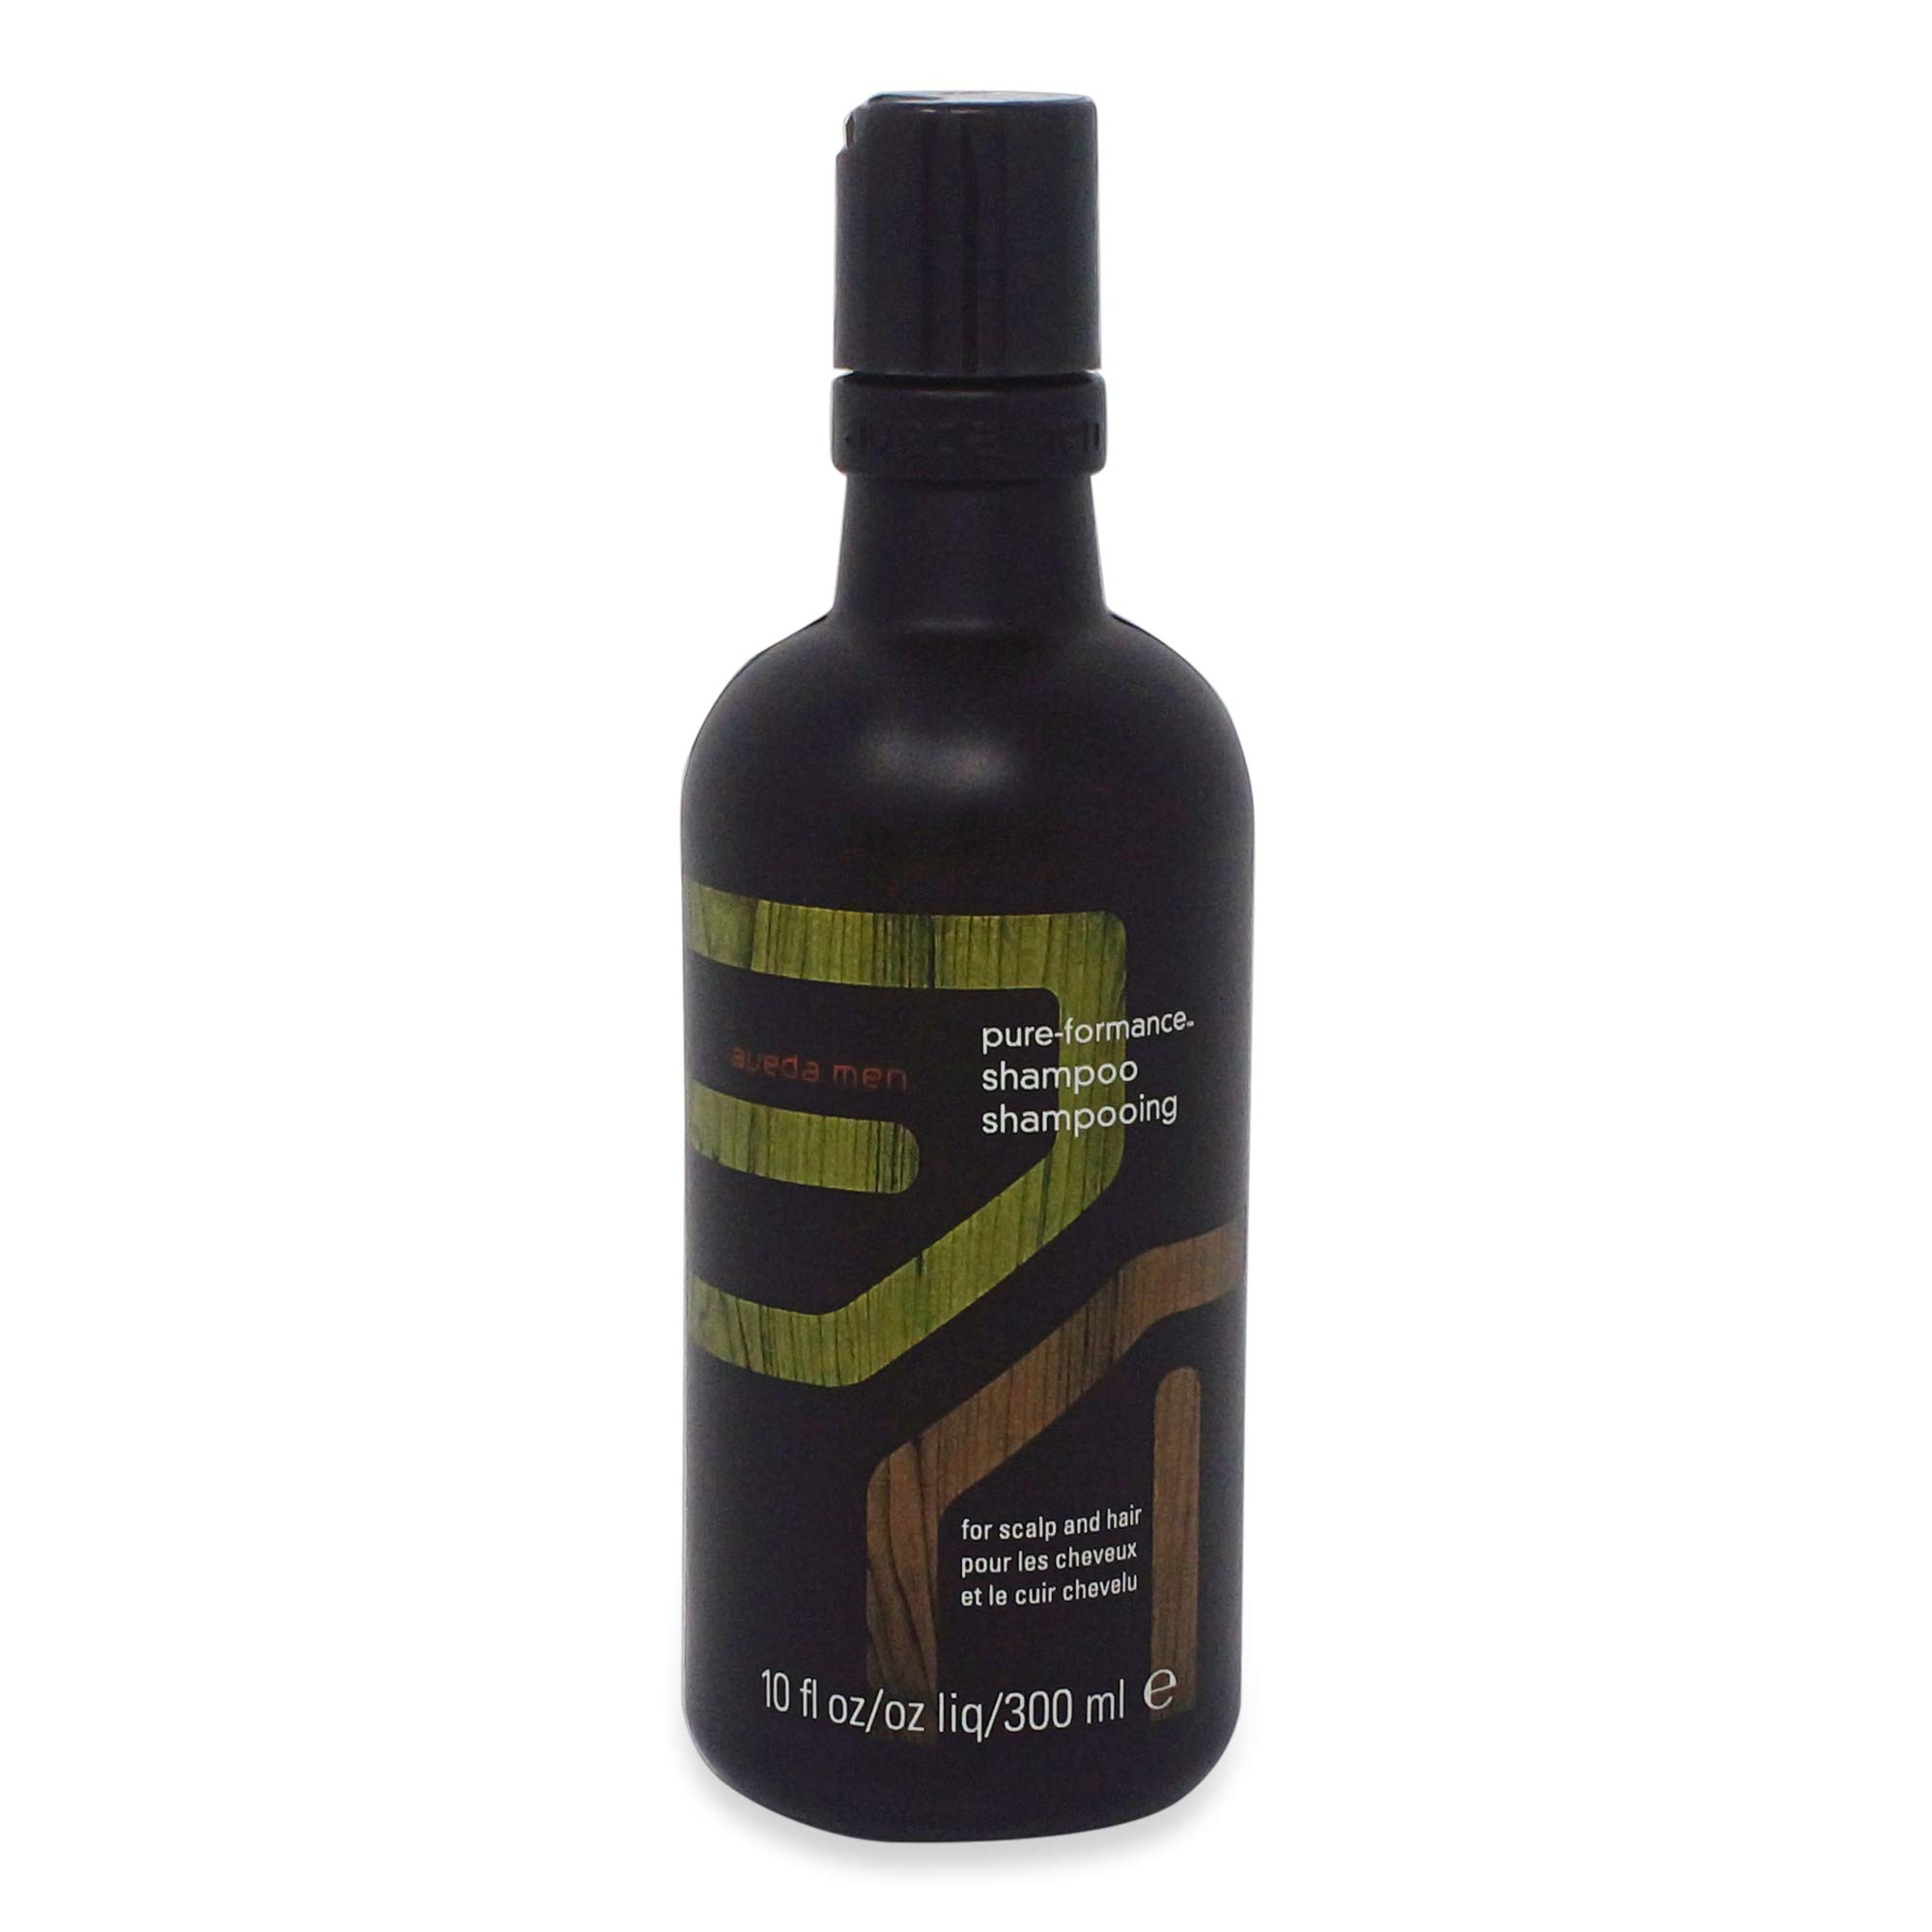 Aveda Mens Pure-Formance Shampoo for Men, 10-Ounce by Aveda